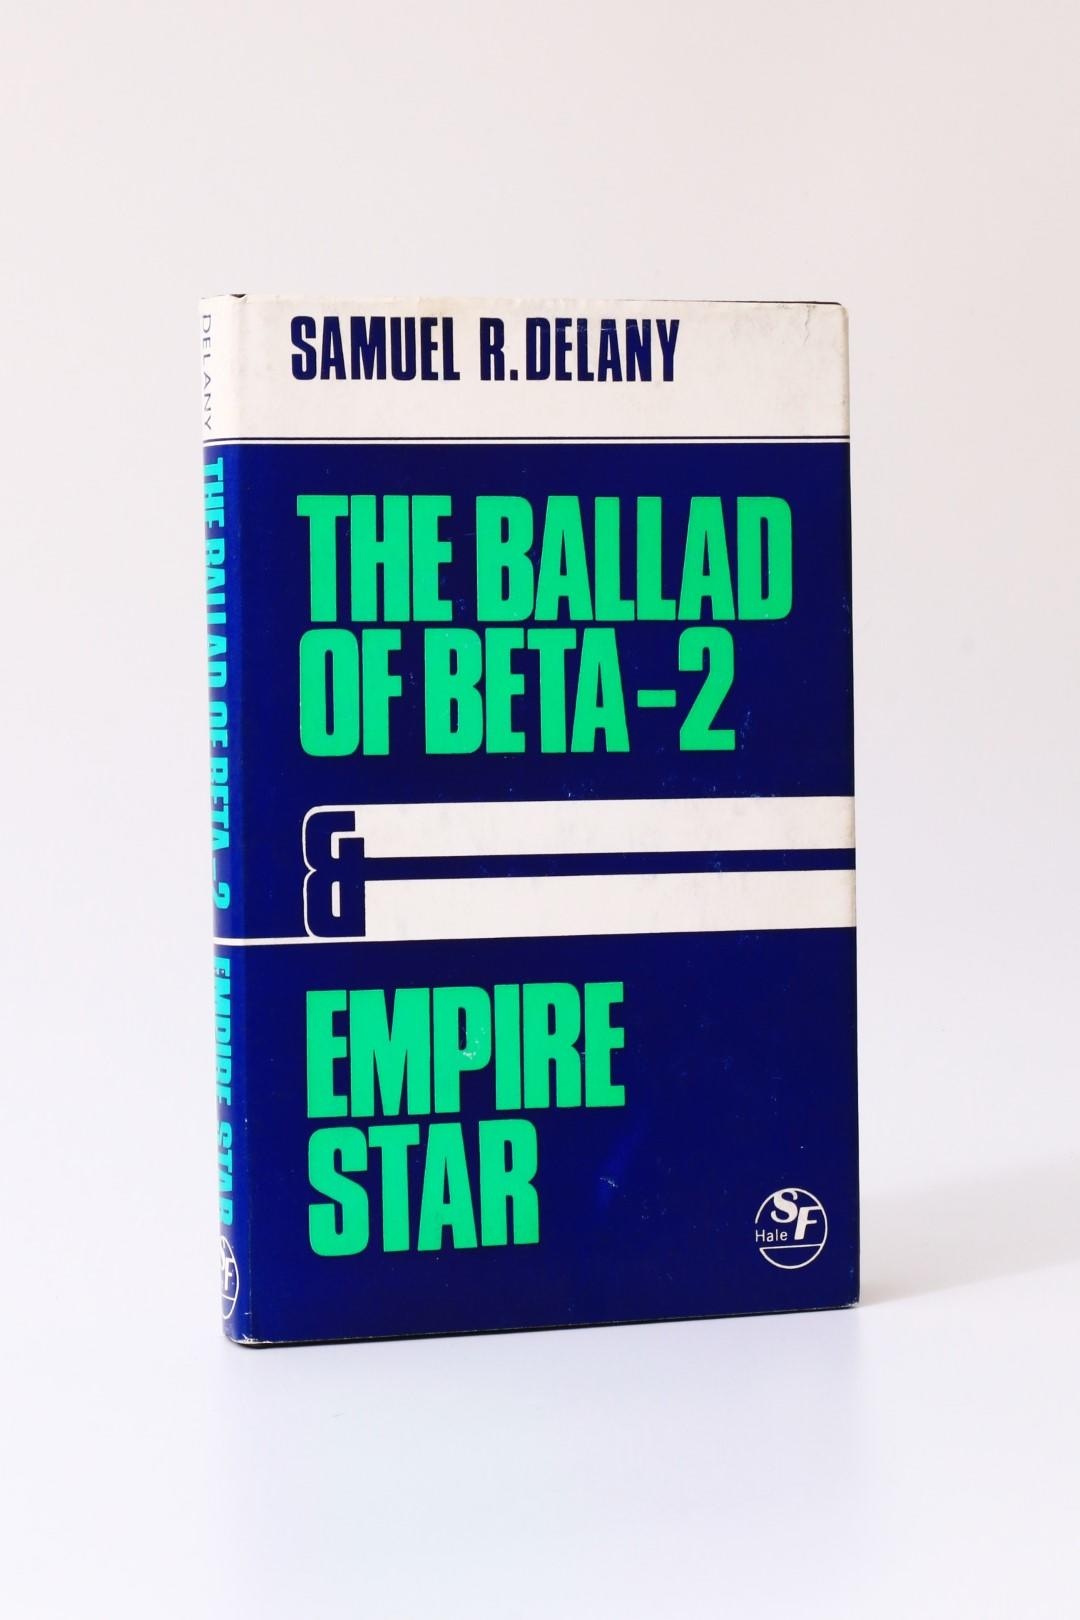 Samuel R. Delany - The Ballad of Beta-2 & Empire Star - Robert Hale, 1978, First Thus.